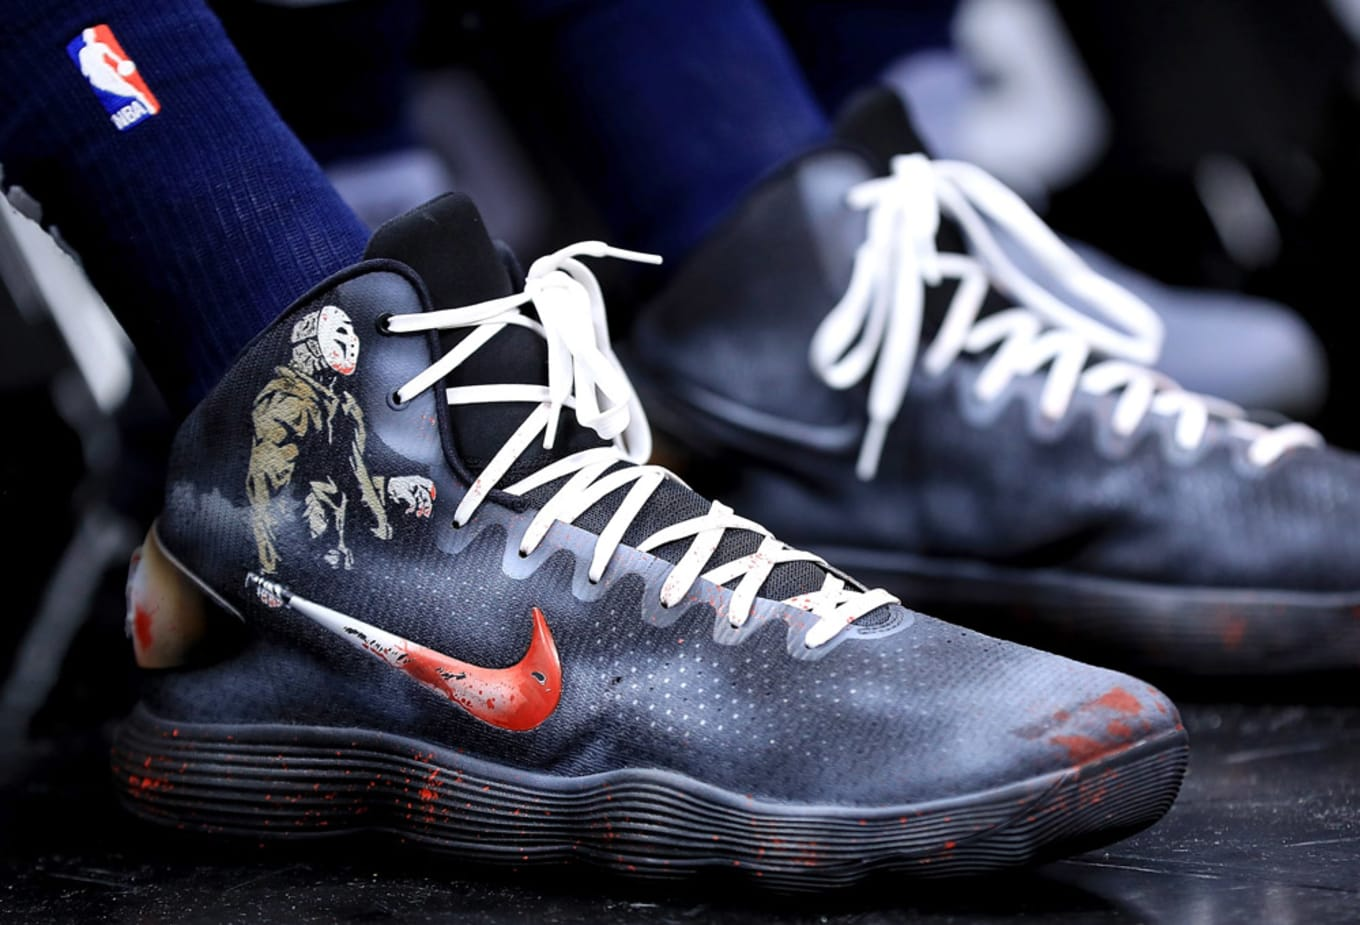 79090d12db6 Karl Anthony Towns Custom Jason Nike Sneakers Halloween